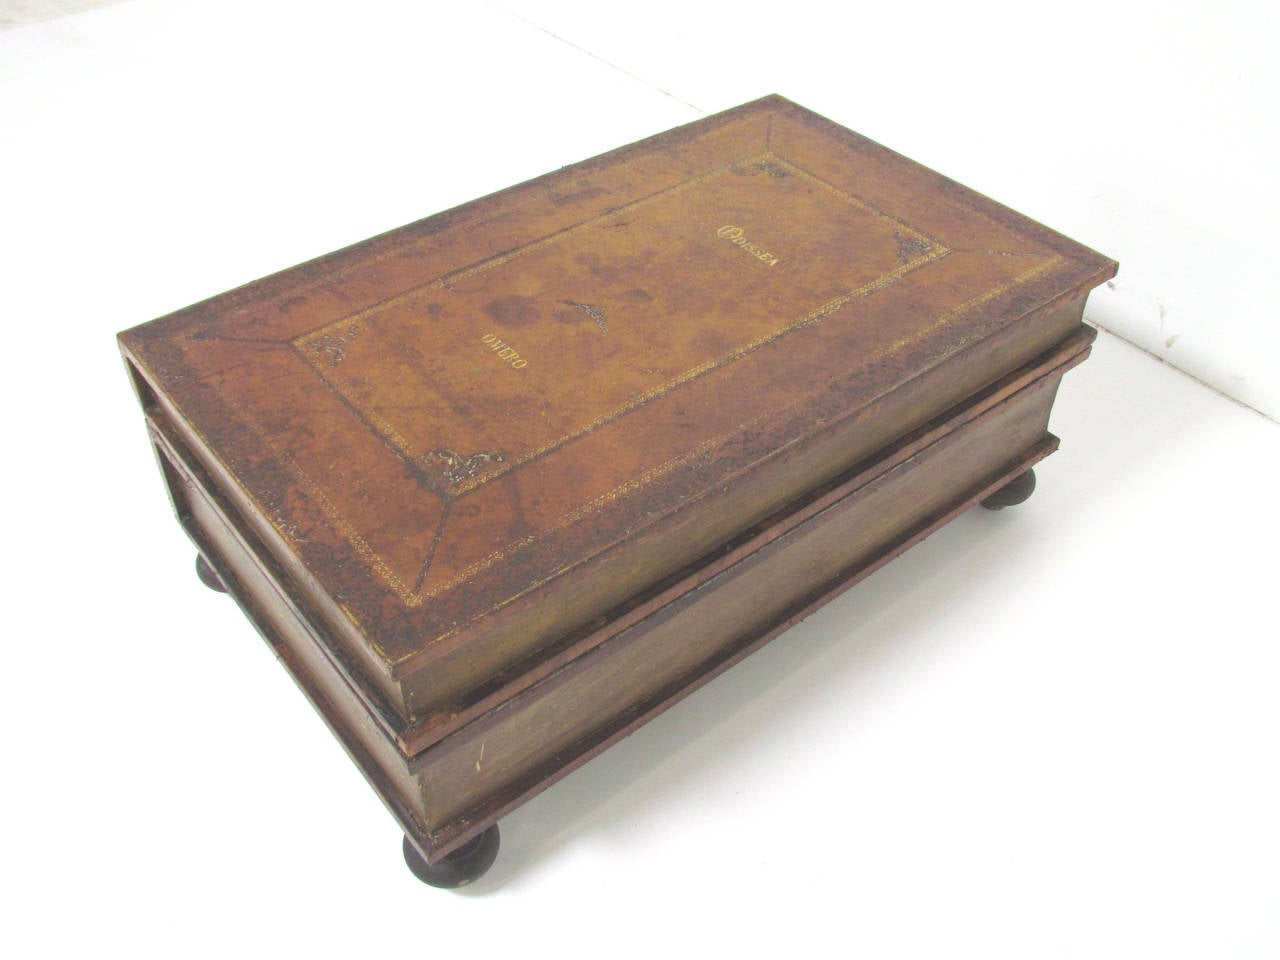 Italian Leather Book Form Table in manner of Maitland - Smith 7